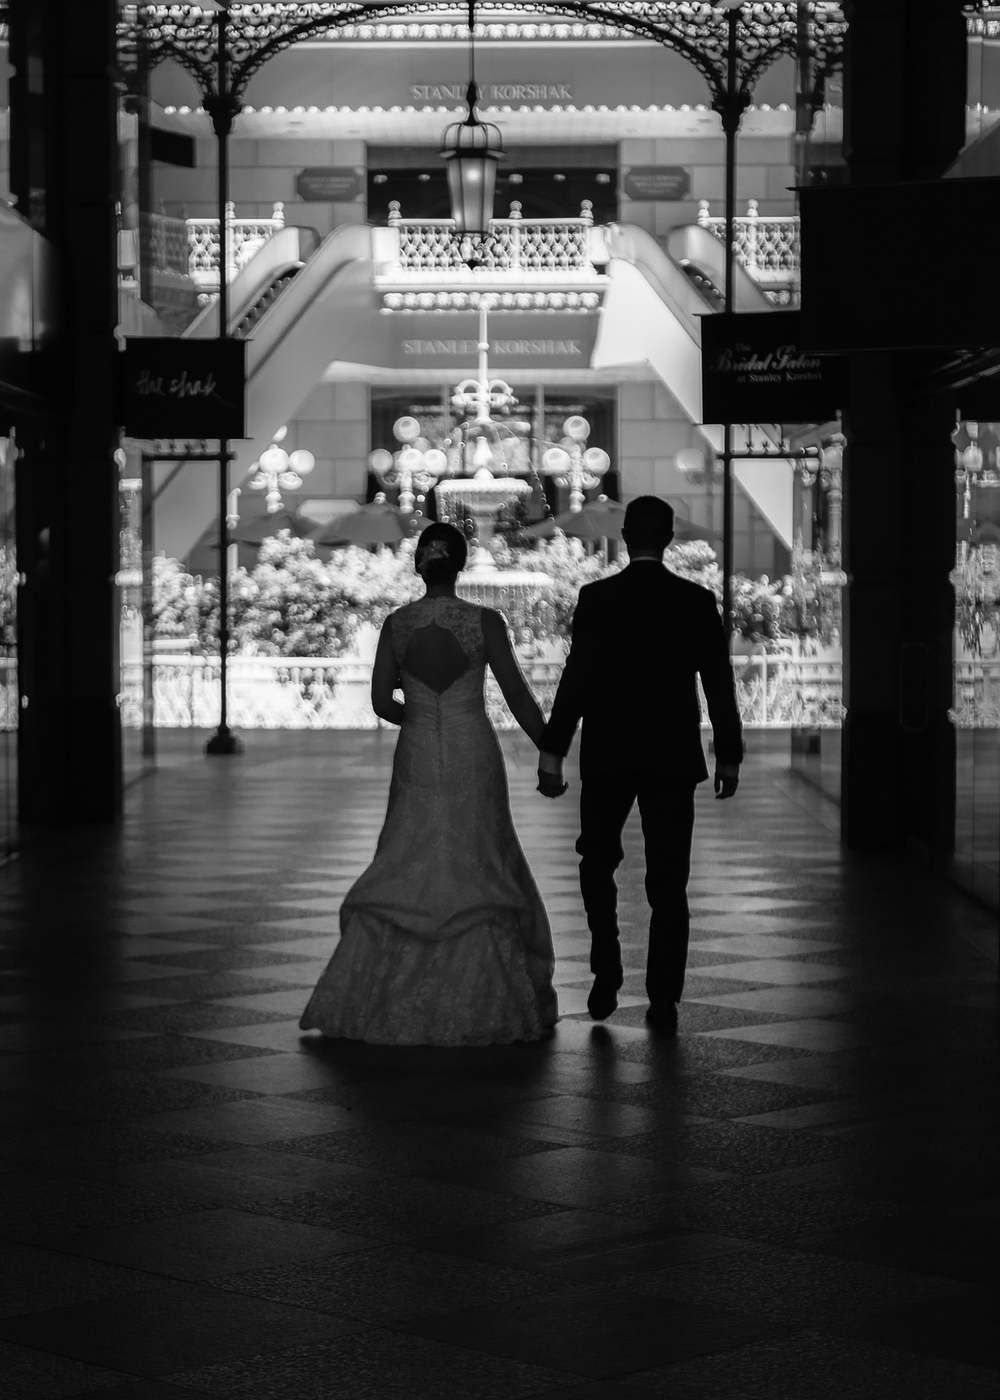 Michael-Napier-Weddings-Sprague-Stanley Wedding-Album-3 (39).jpg